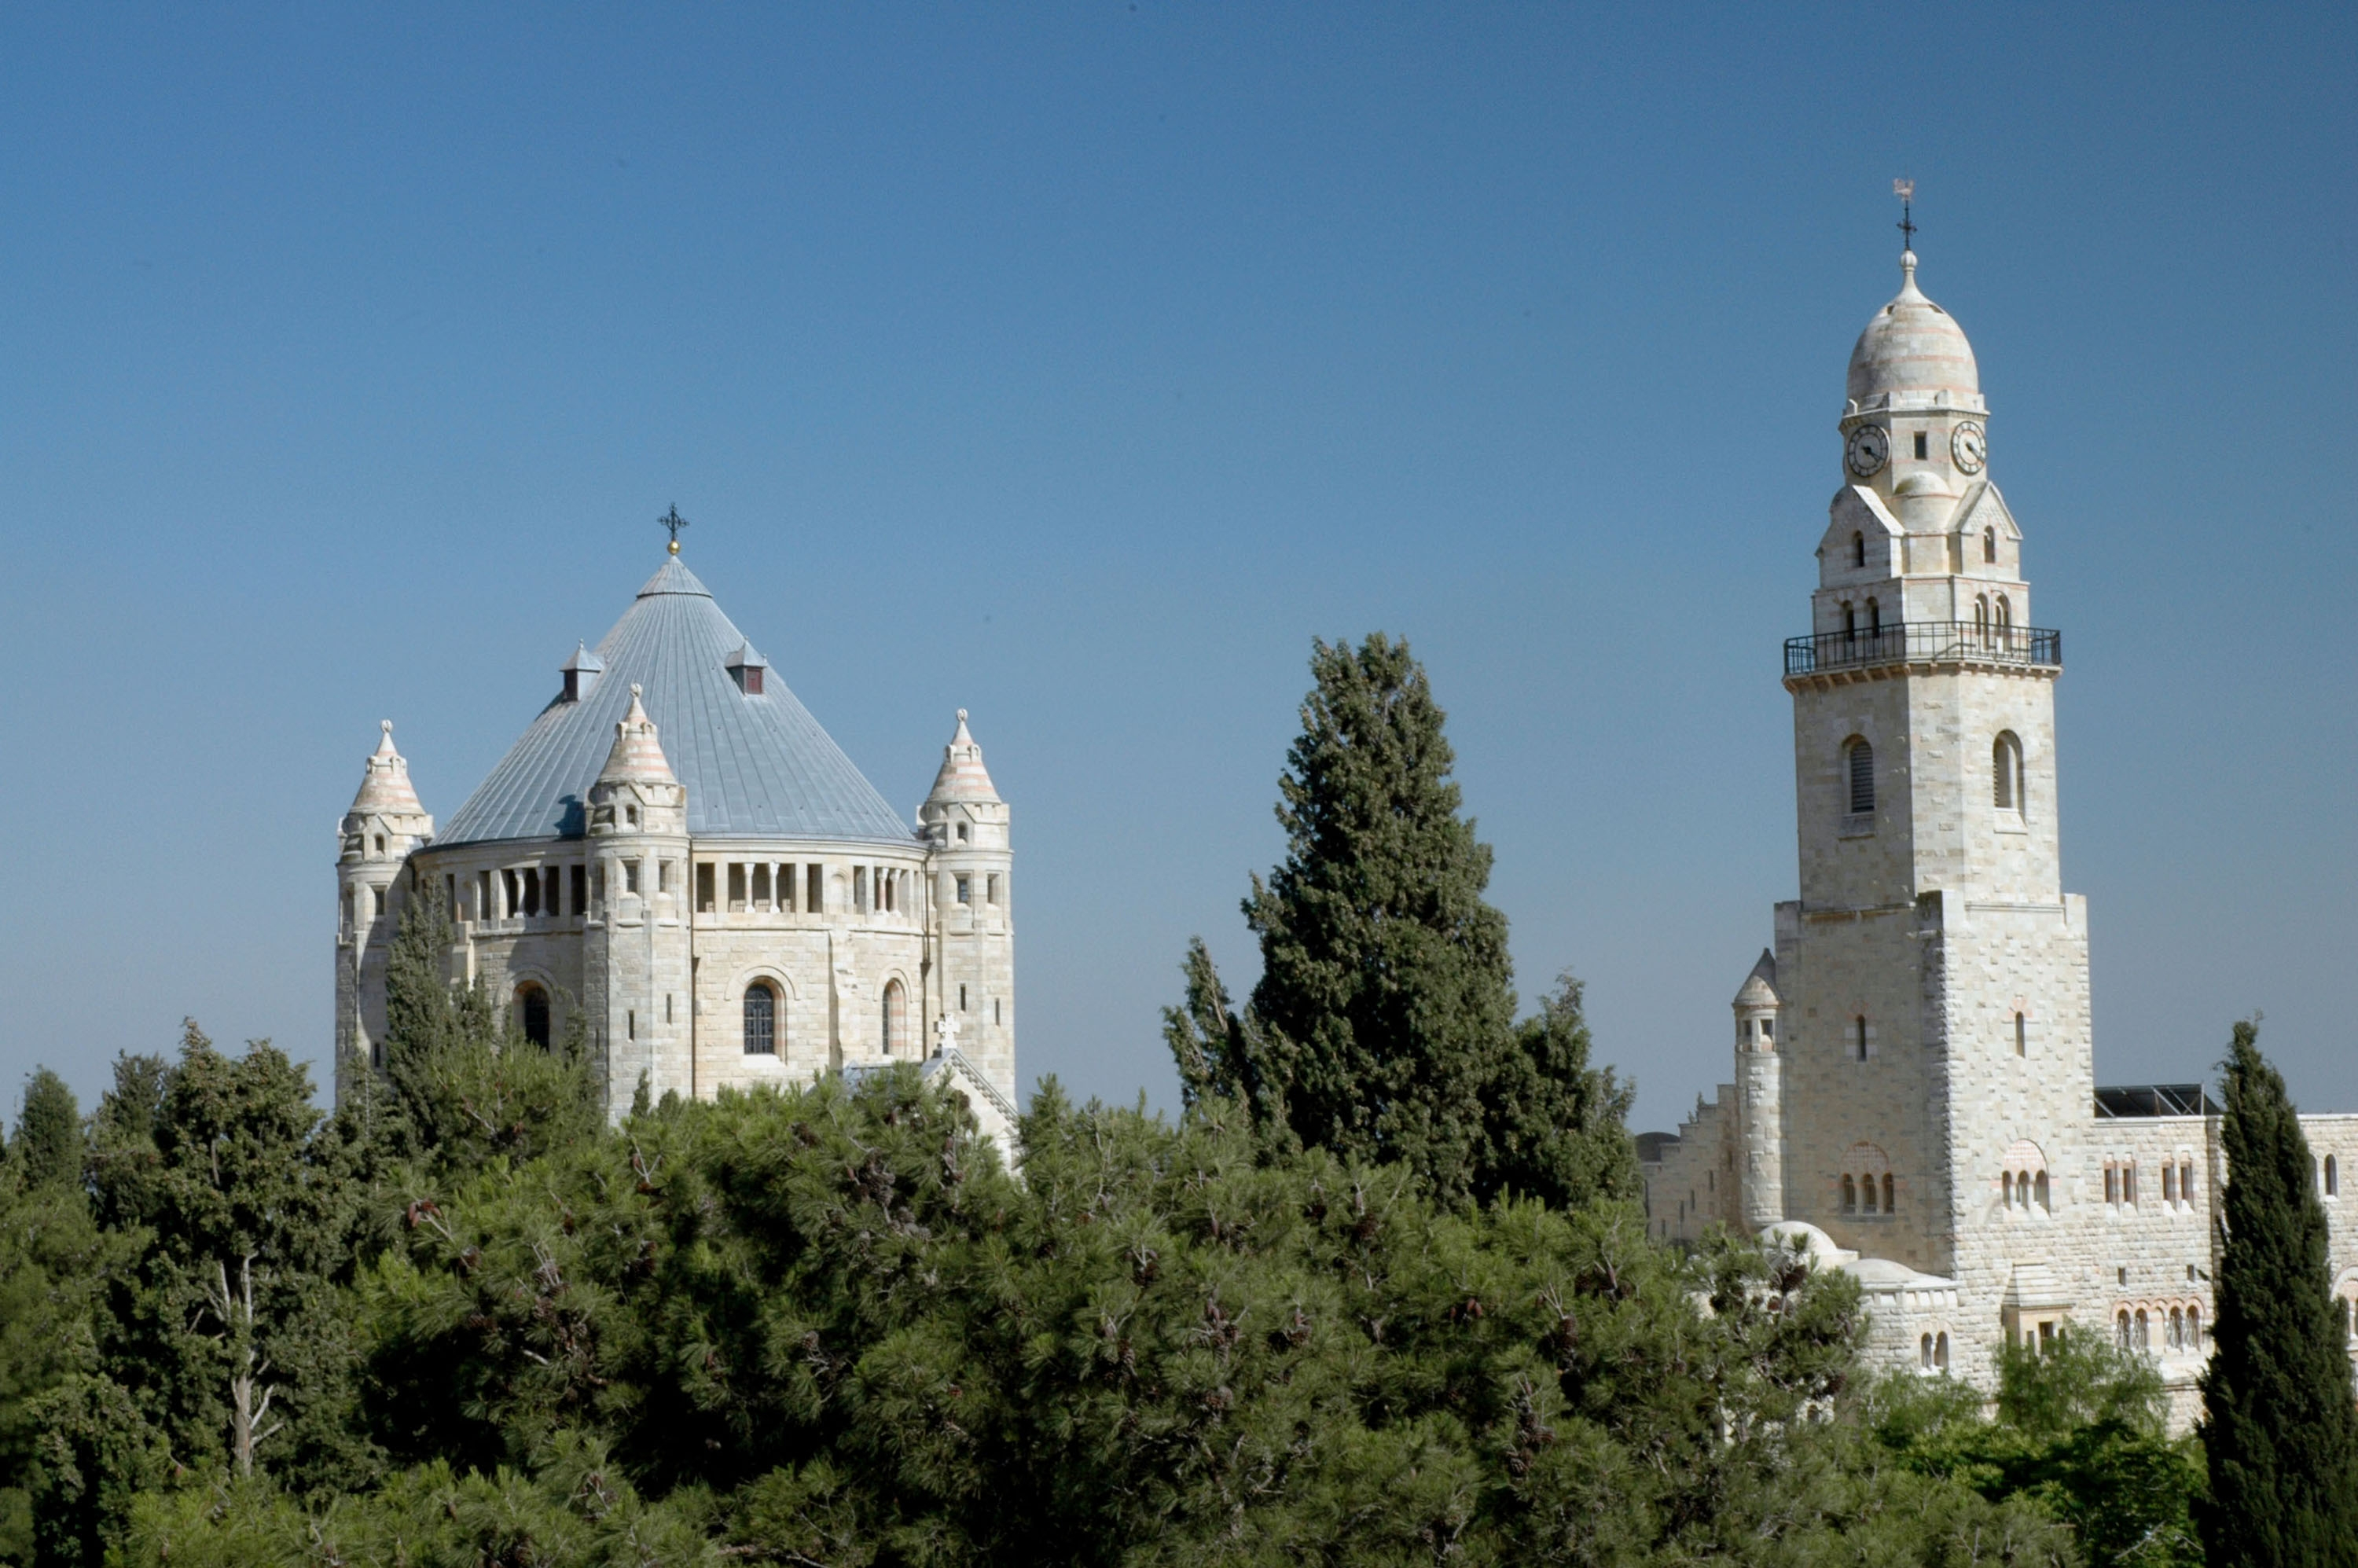 Mt. Zion is the highest point in the old city of Jerusalem.